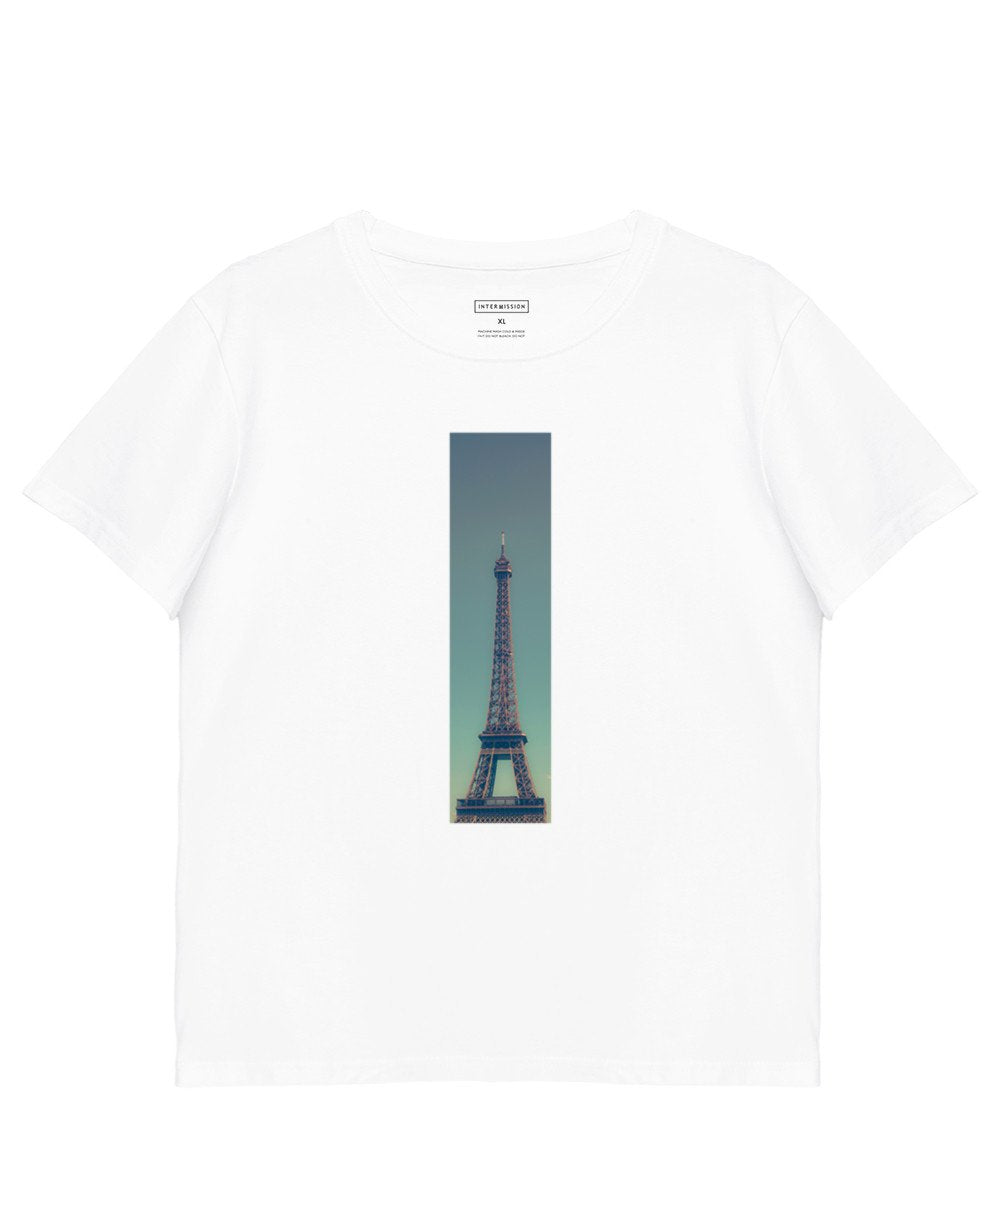 Tower Print T-Shirt in White - T-Shirts - INTERMISSION - BRANMA